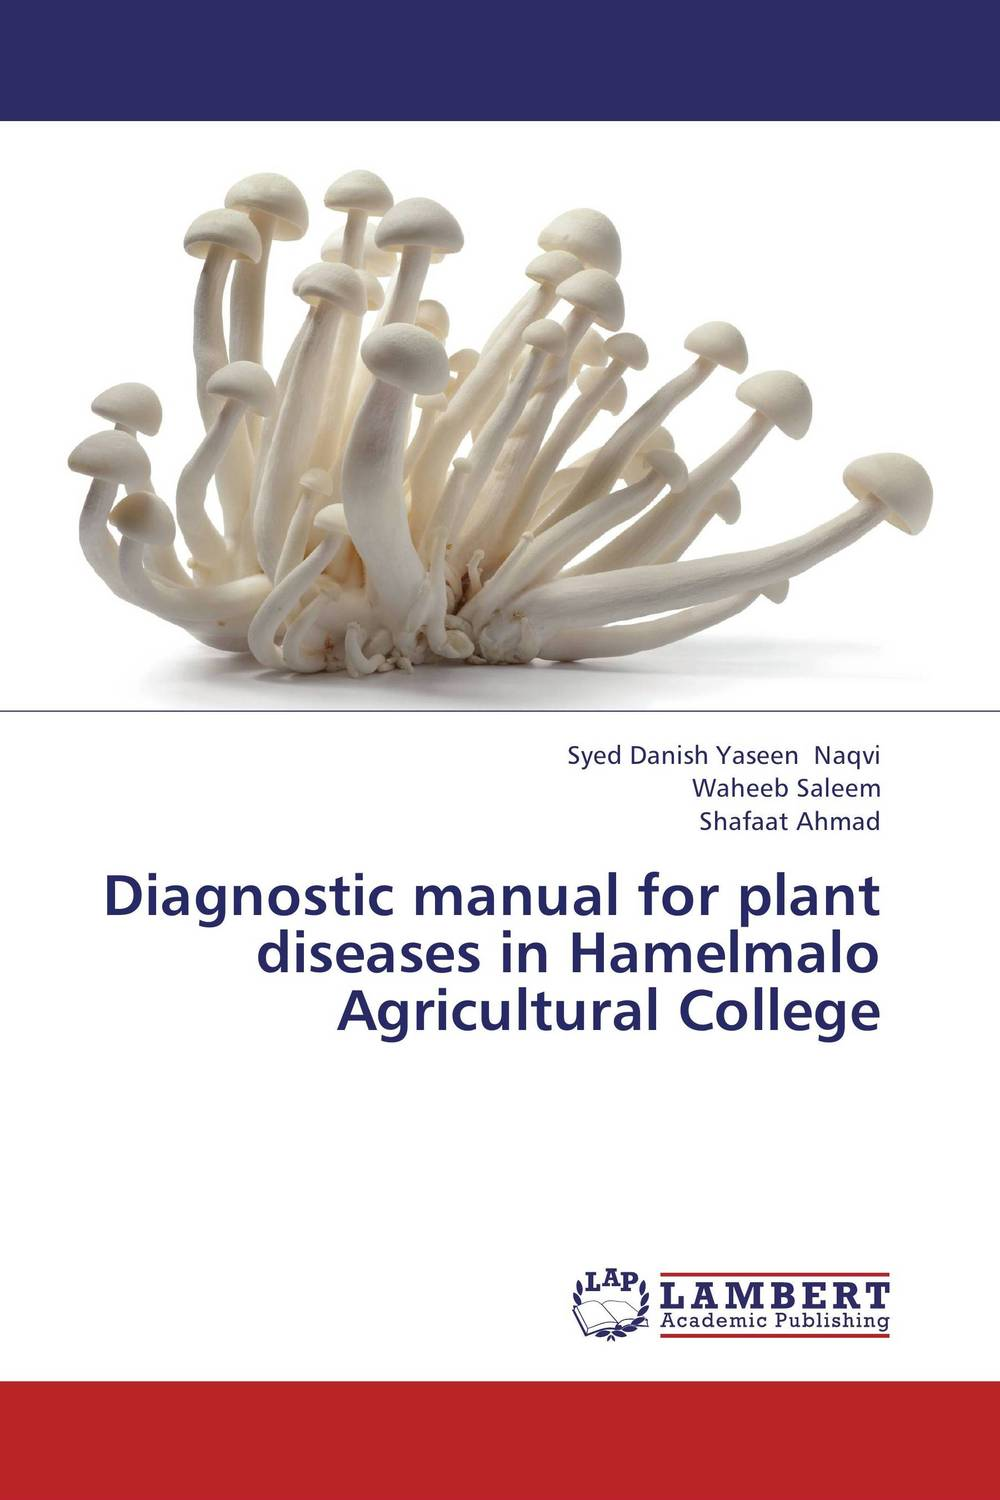 Diagnostic manual for plant diseases in Hamelmalo Agricultural College practical manual on applied mathematics